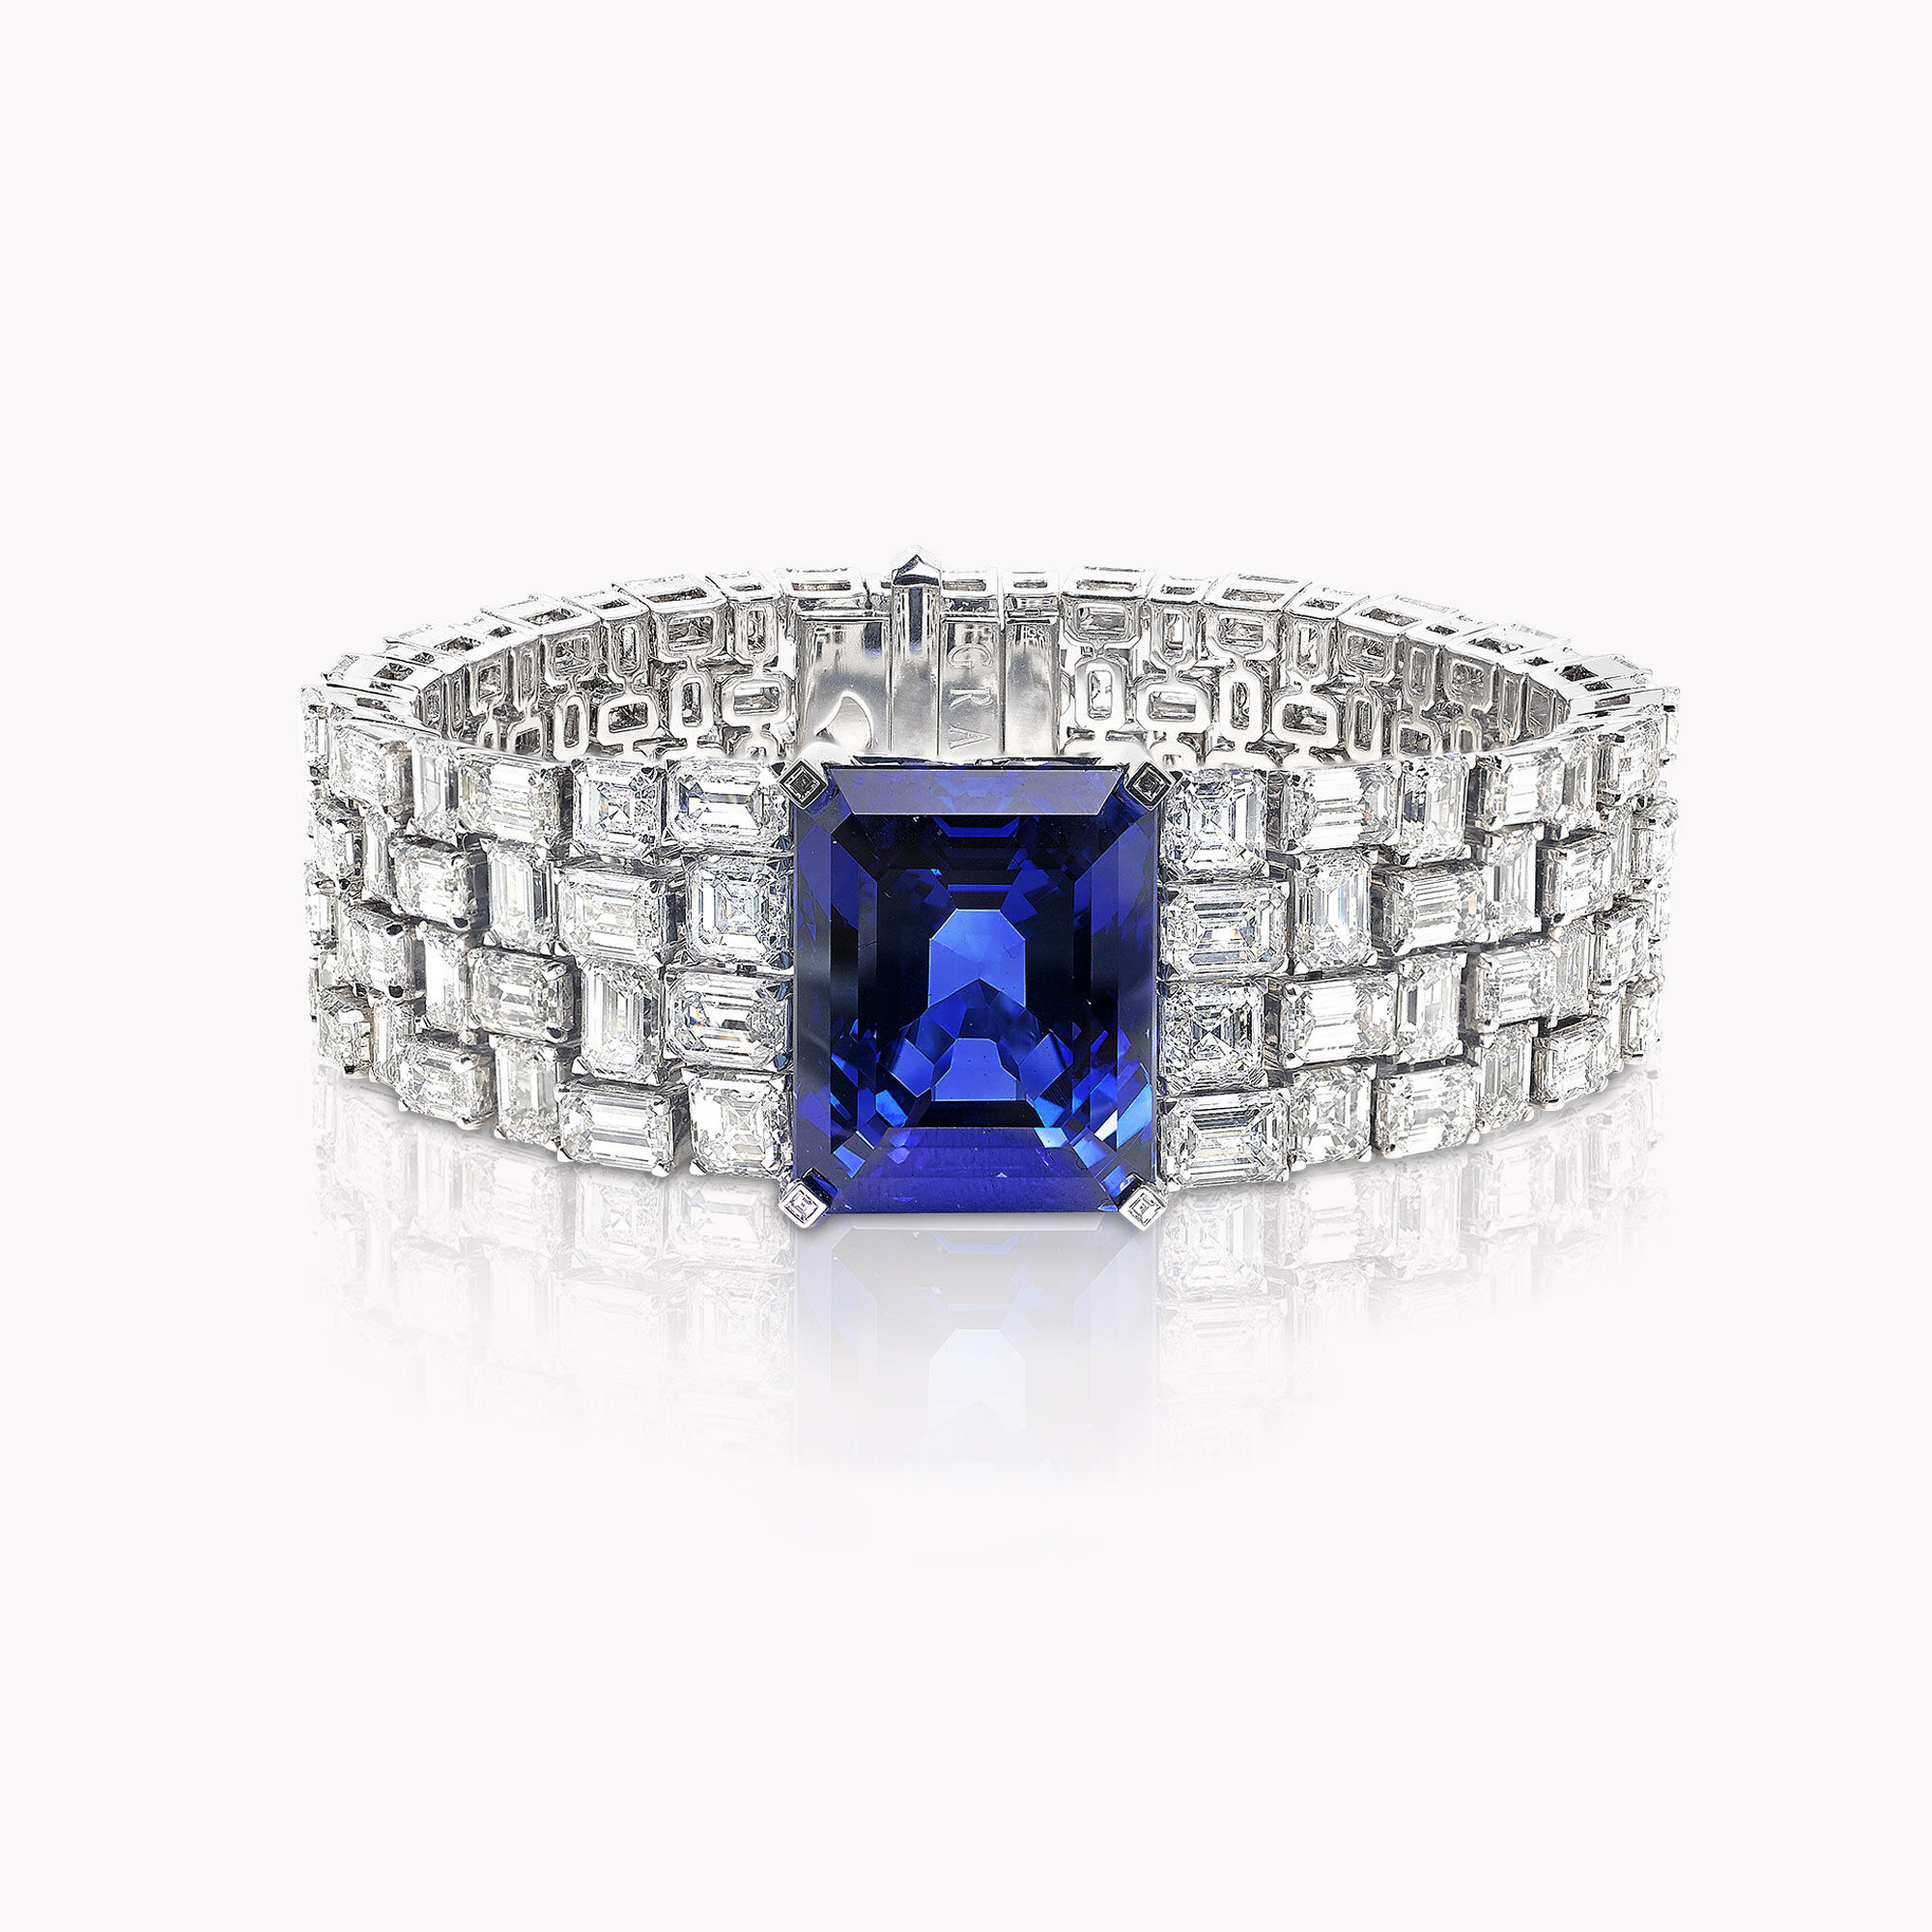 A Graff sapphire and white diamond high jewellery bracelet